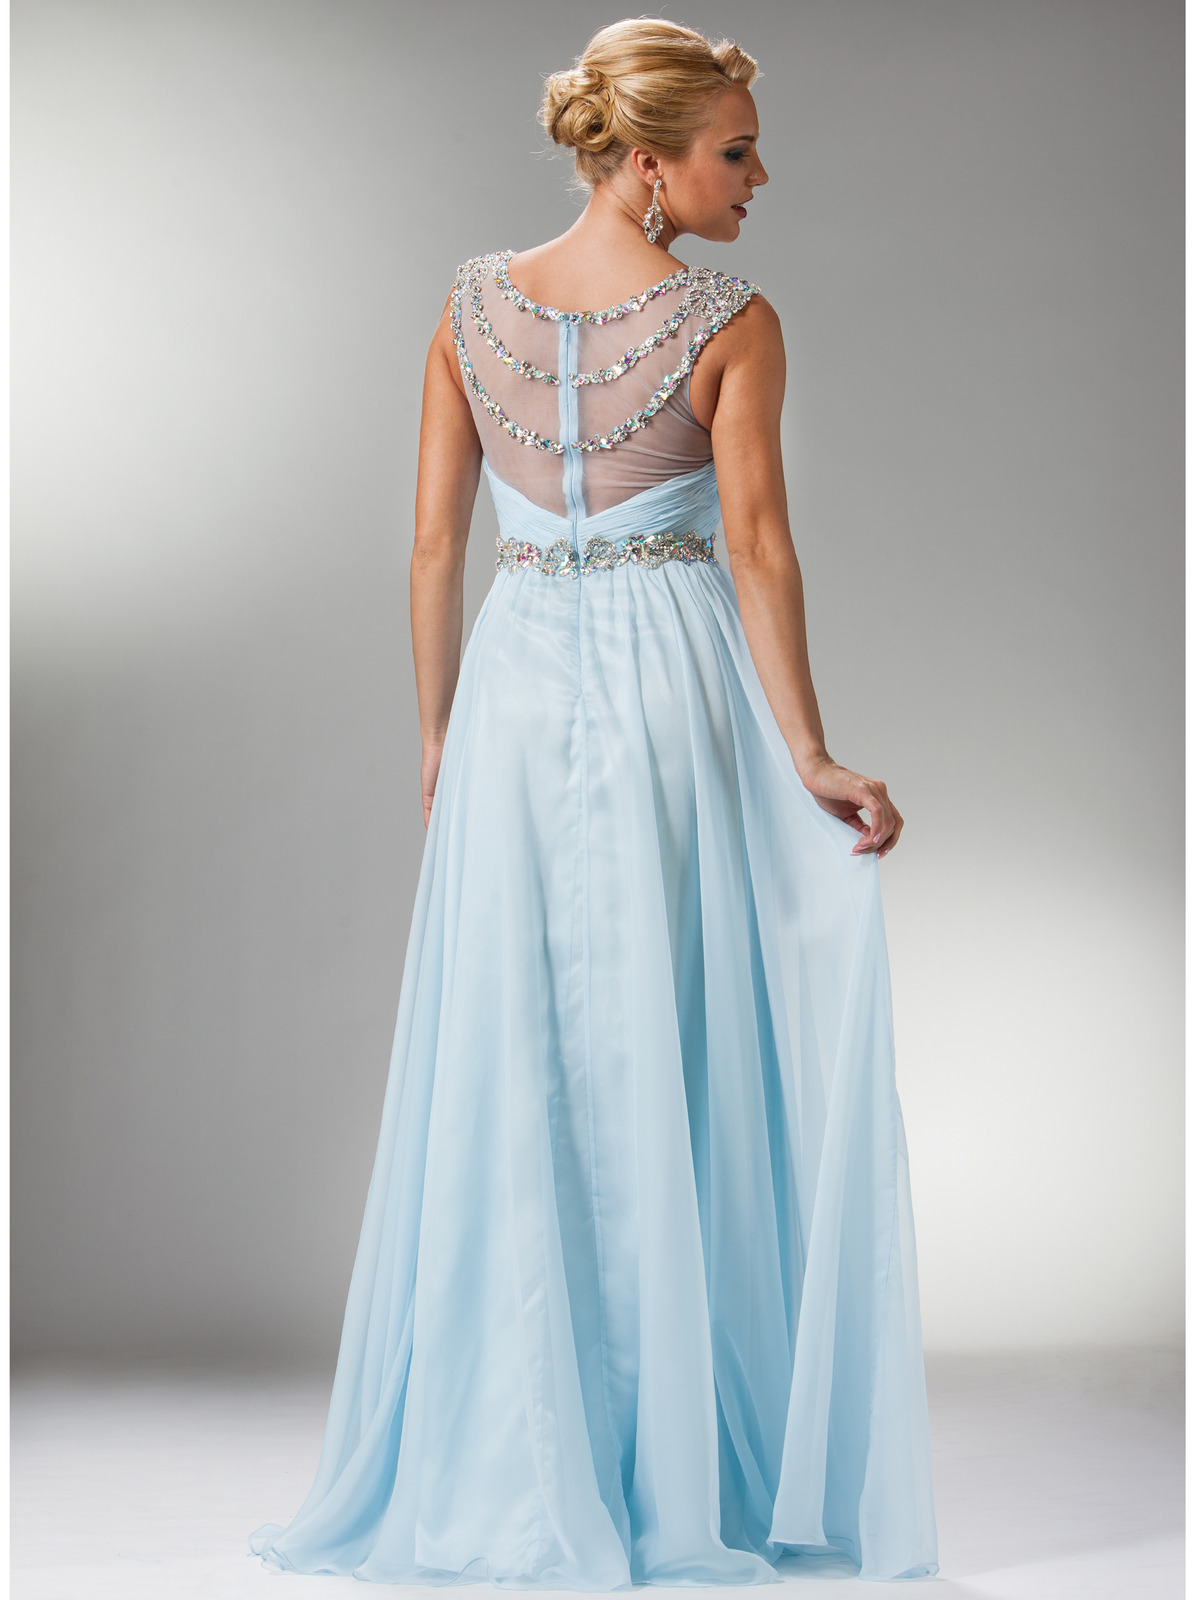 Jewel Lined Ruche Sheer Bodice Evening Dress